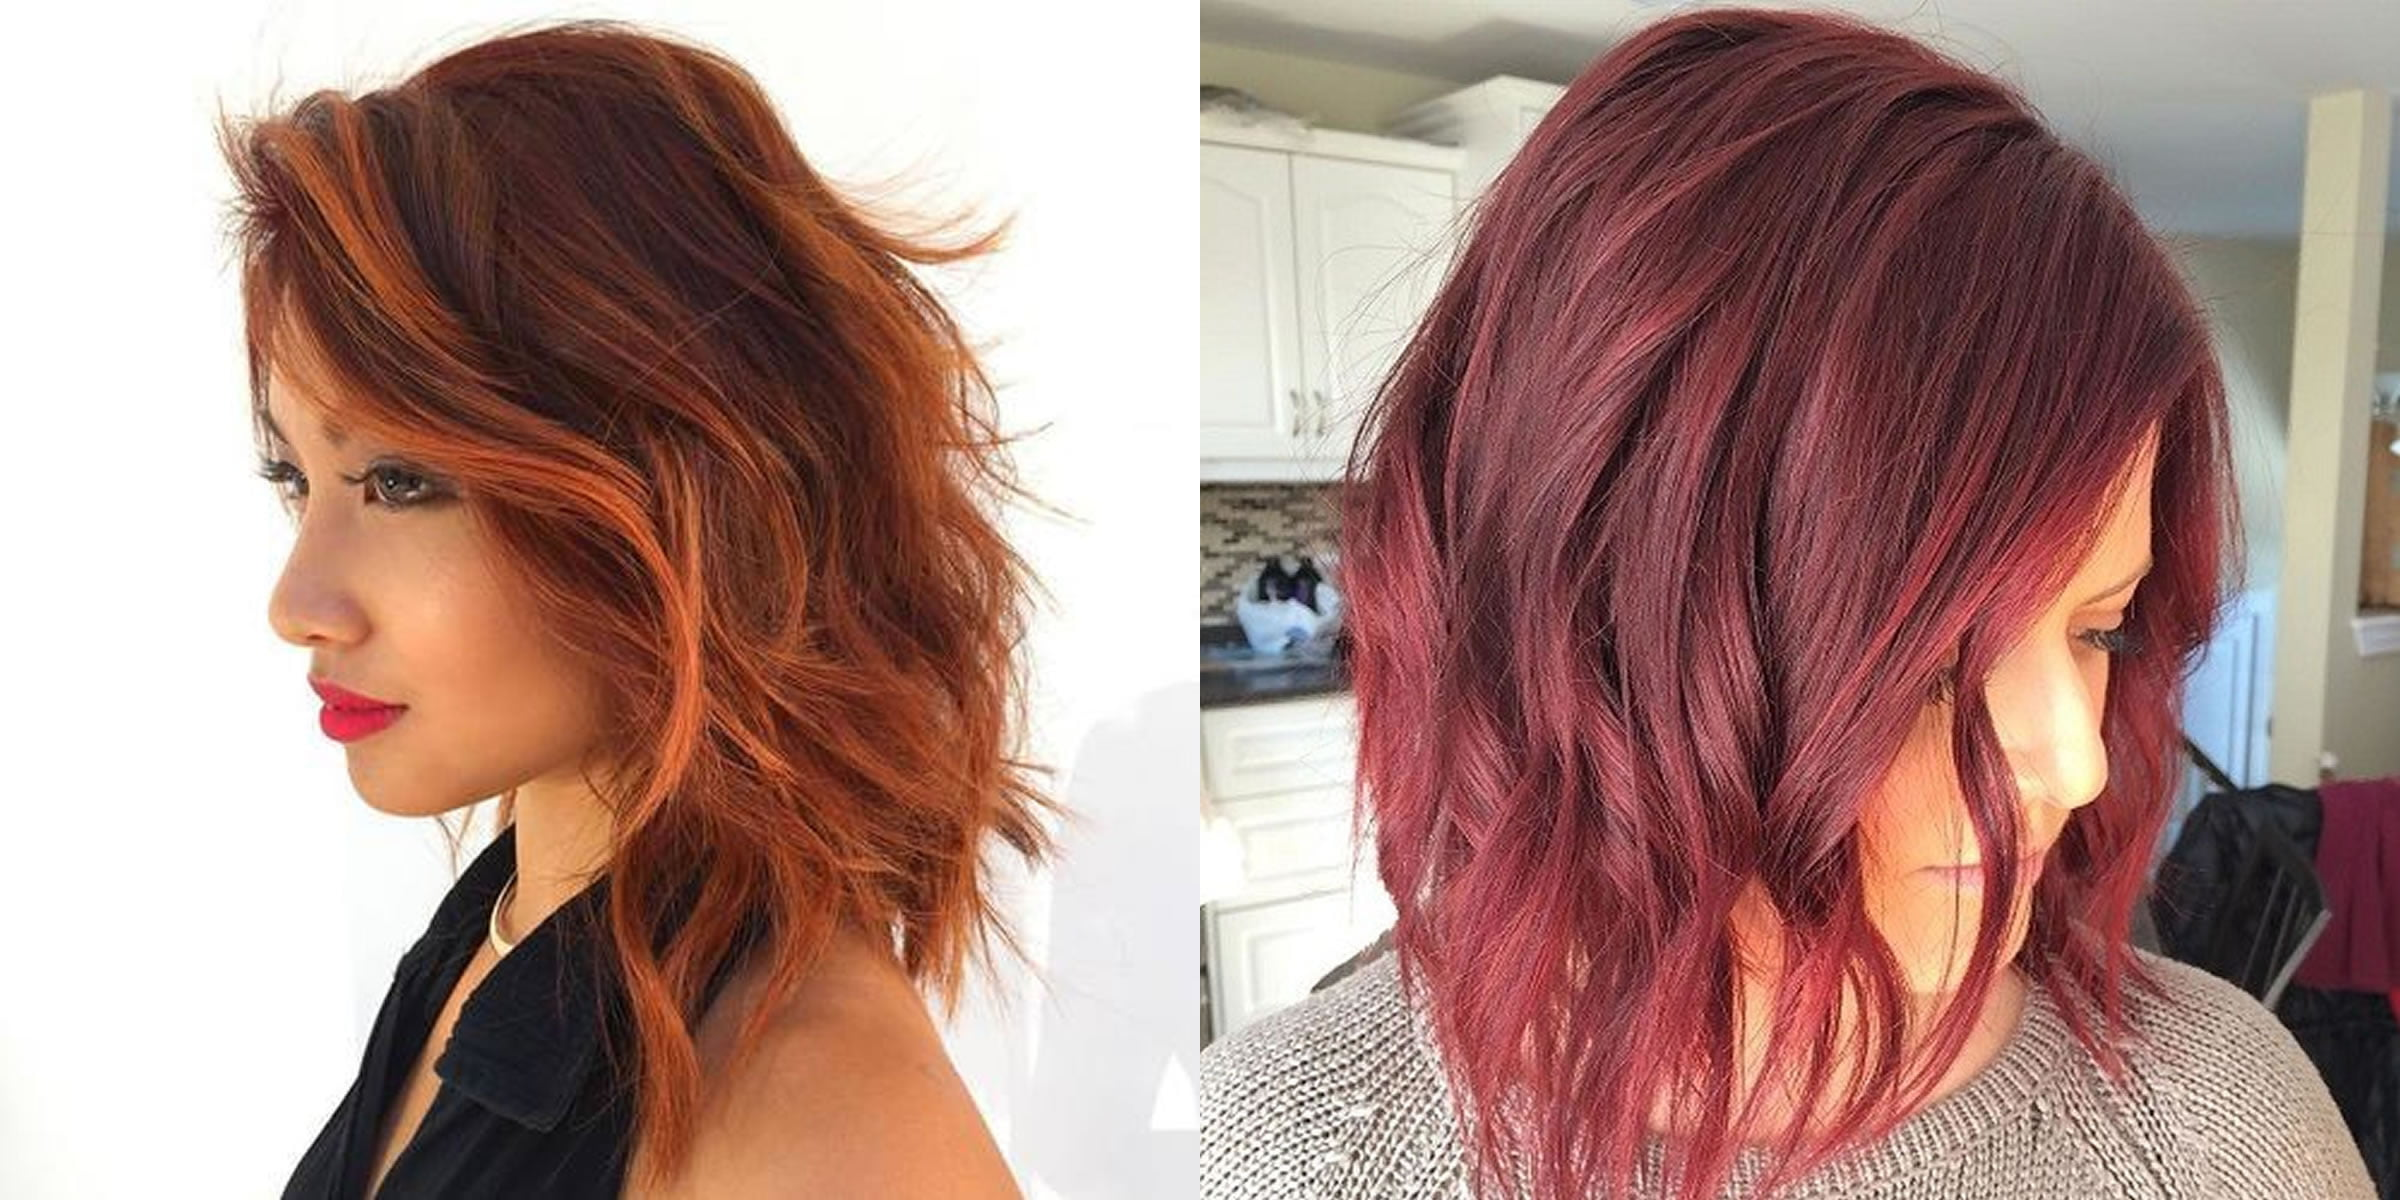 Long Bob Hairstyles And Hair Colors Haircut Image 23 Trendy Inverted Haircuts The